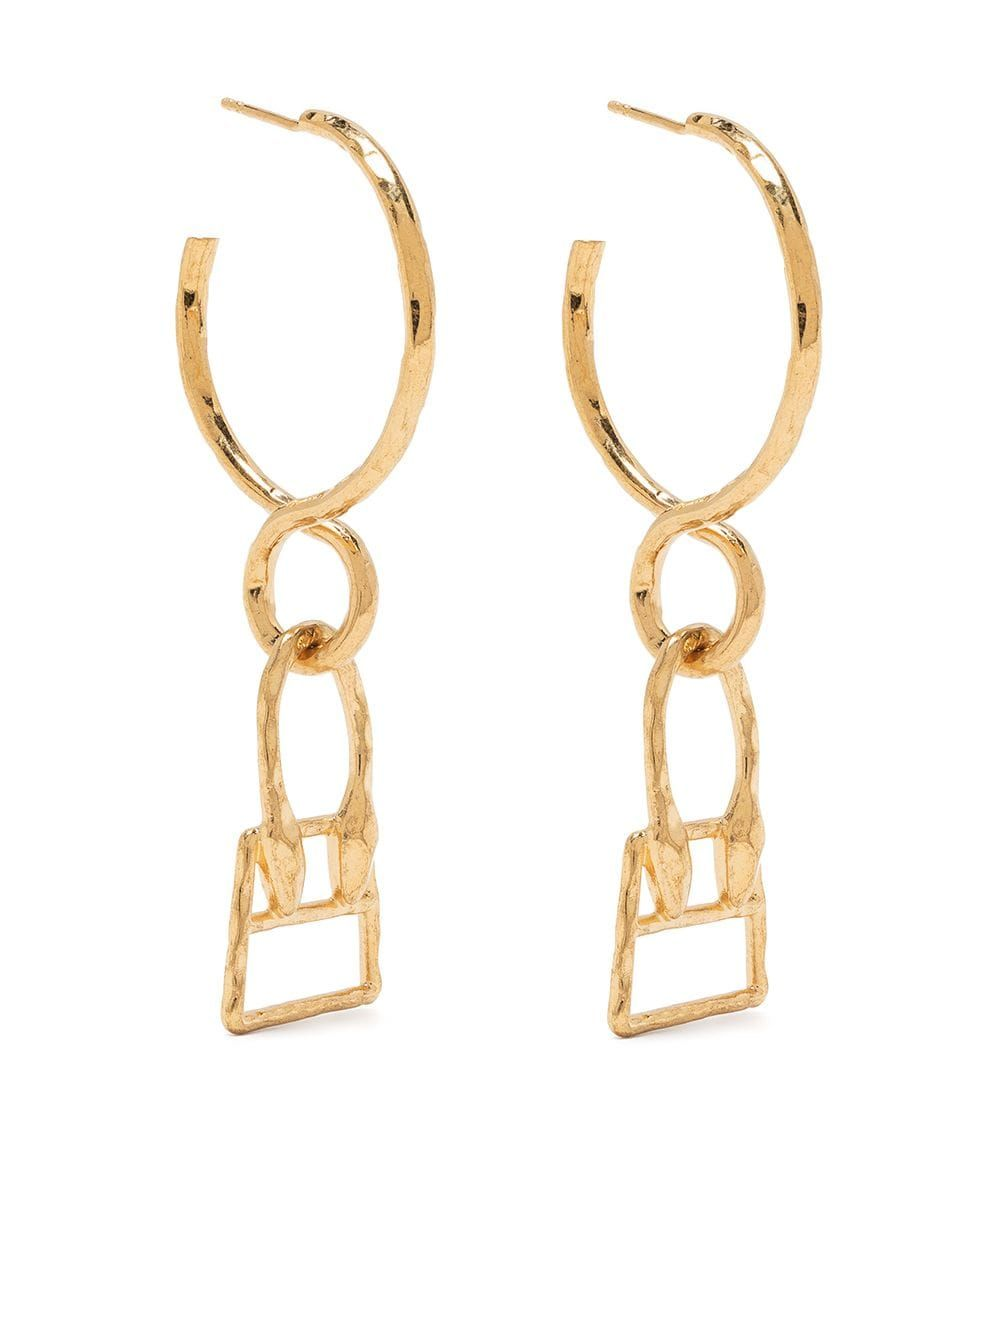 Jacquemus JACQUEMUS WOMEN'S GOLD METAL EARRINGS